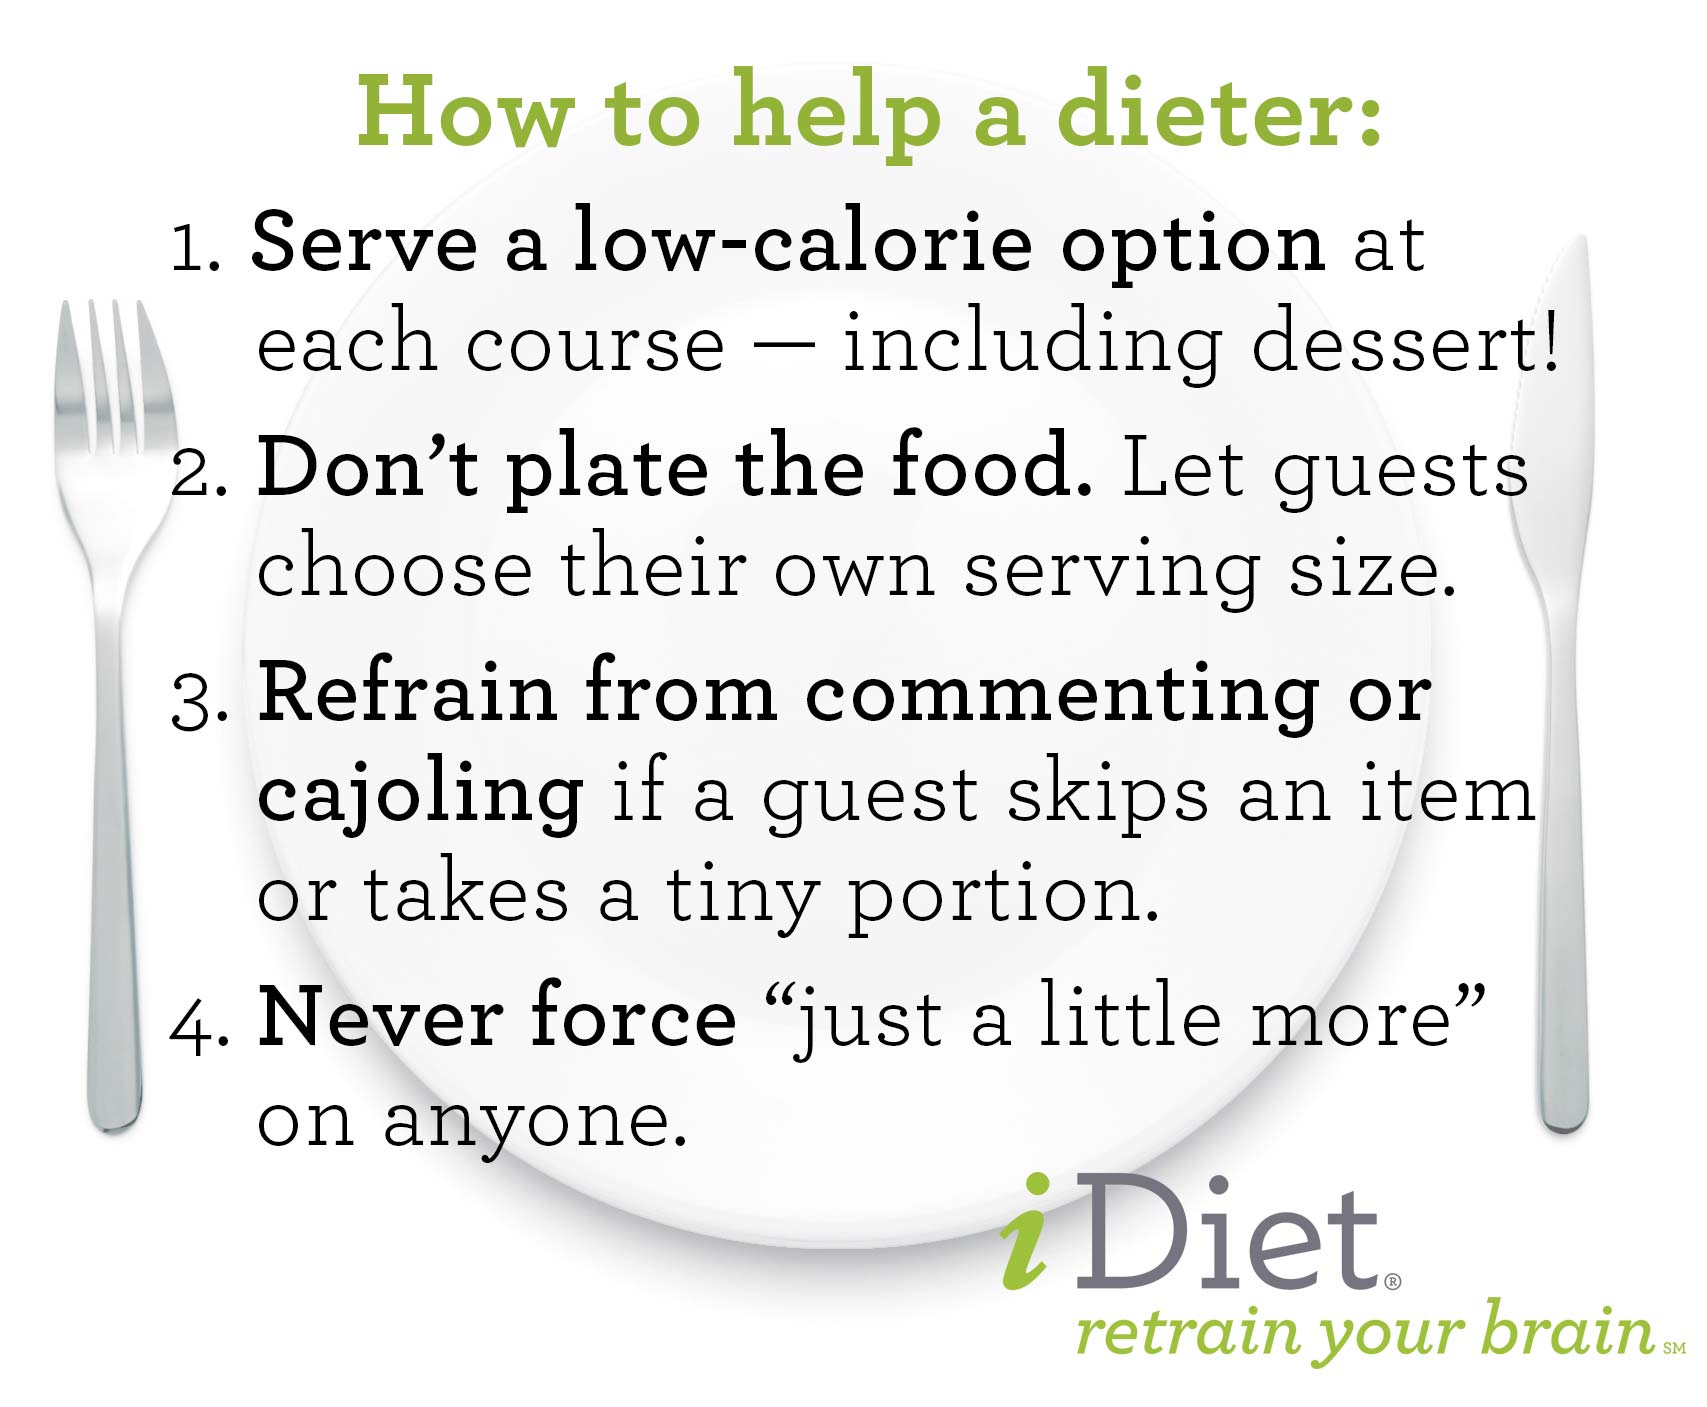 How to Help a Dieter - 3 tips